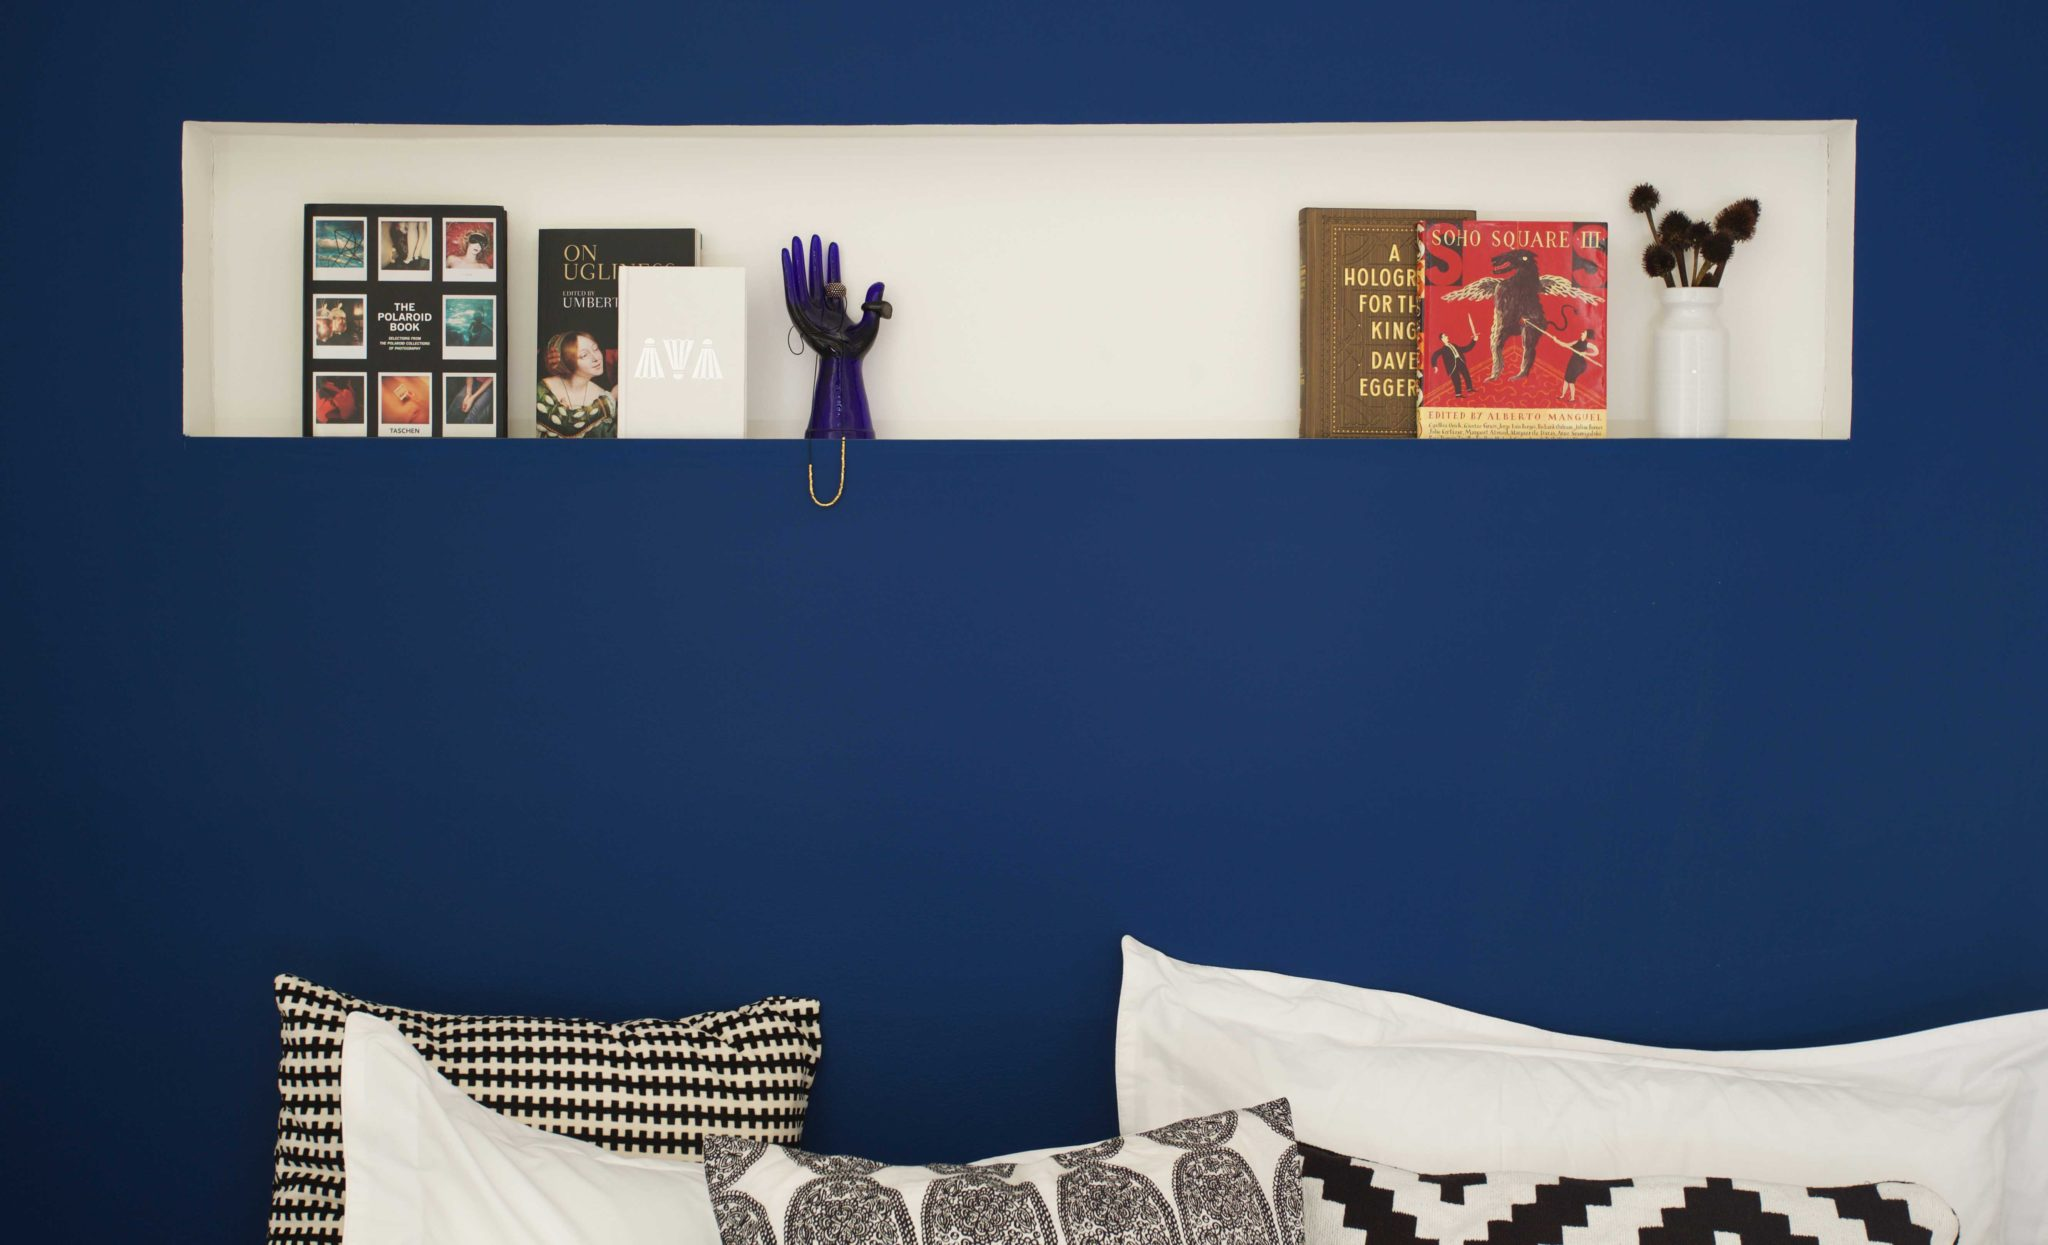 12. Cassidy_Hughes_Design_Niche_Face_Out_Books_Bed_Blue_Wall